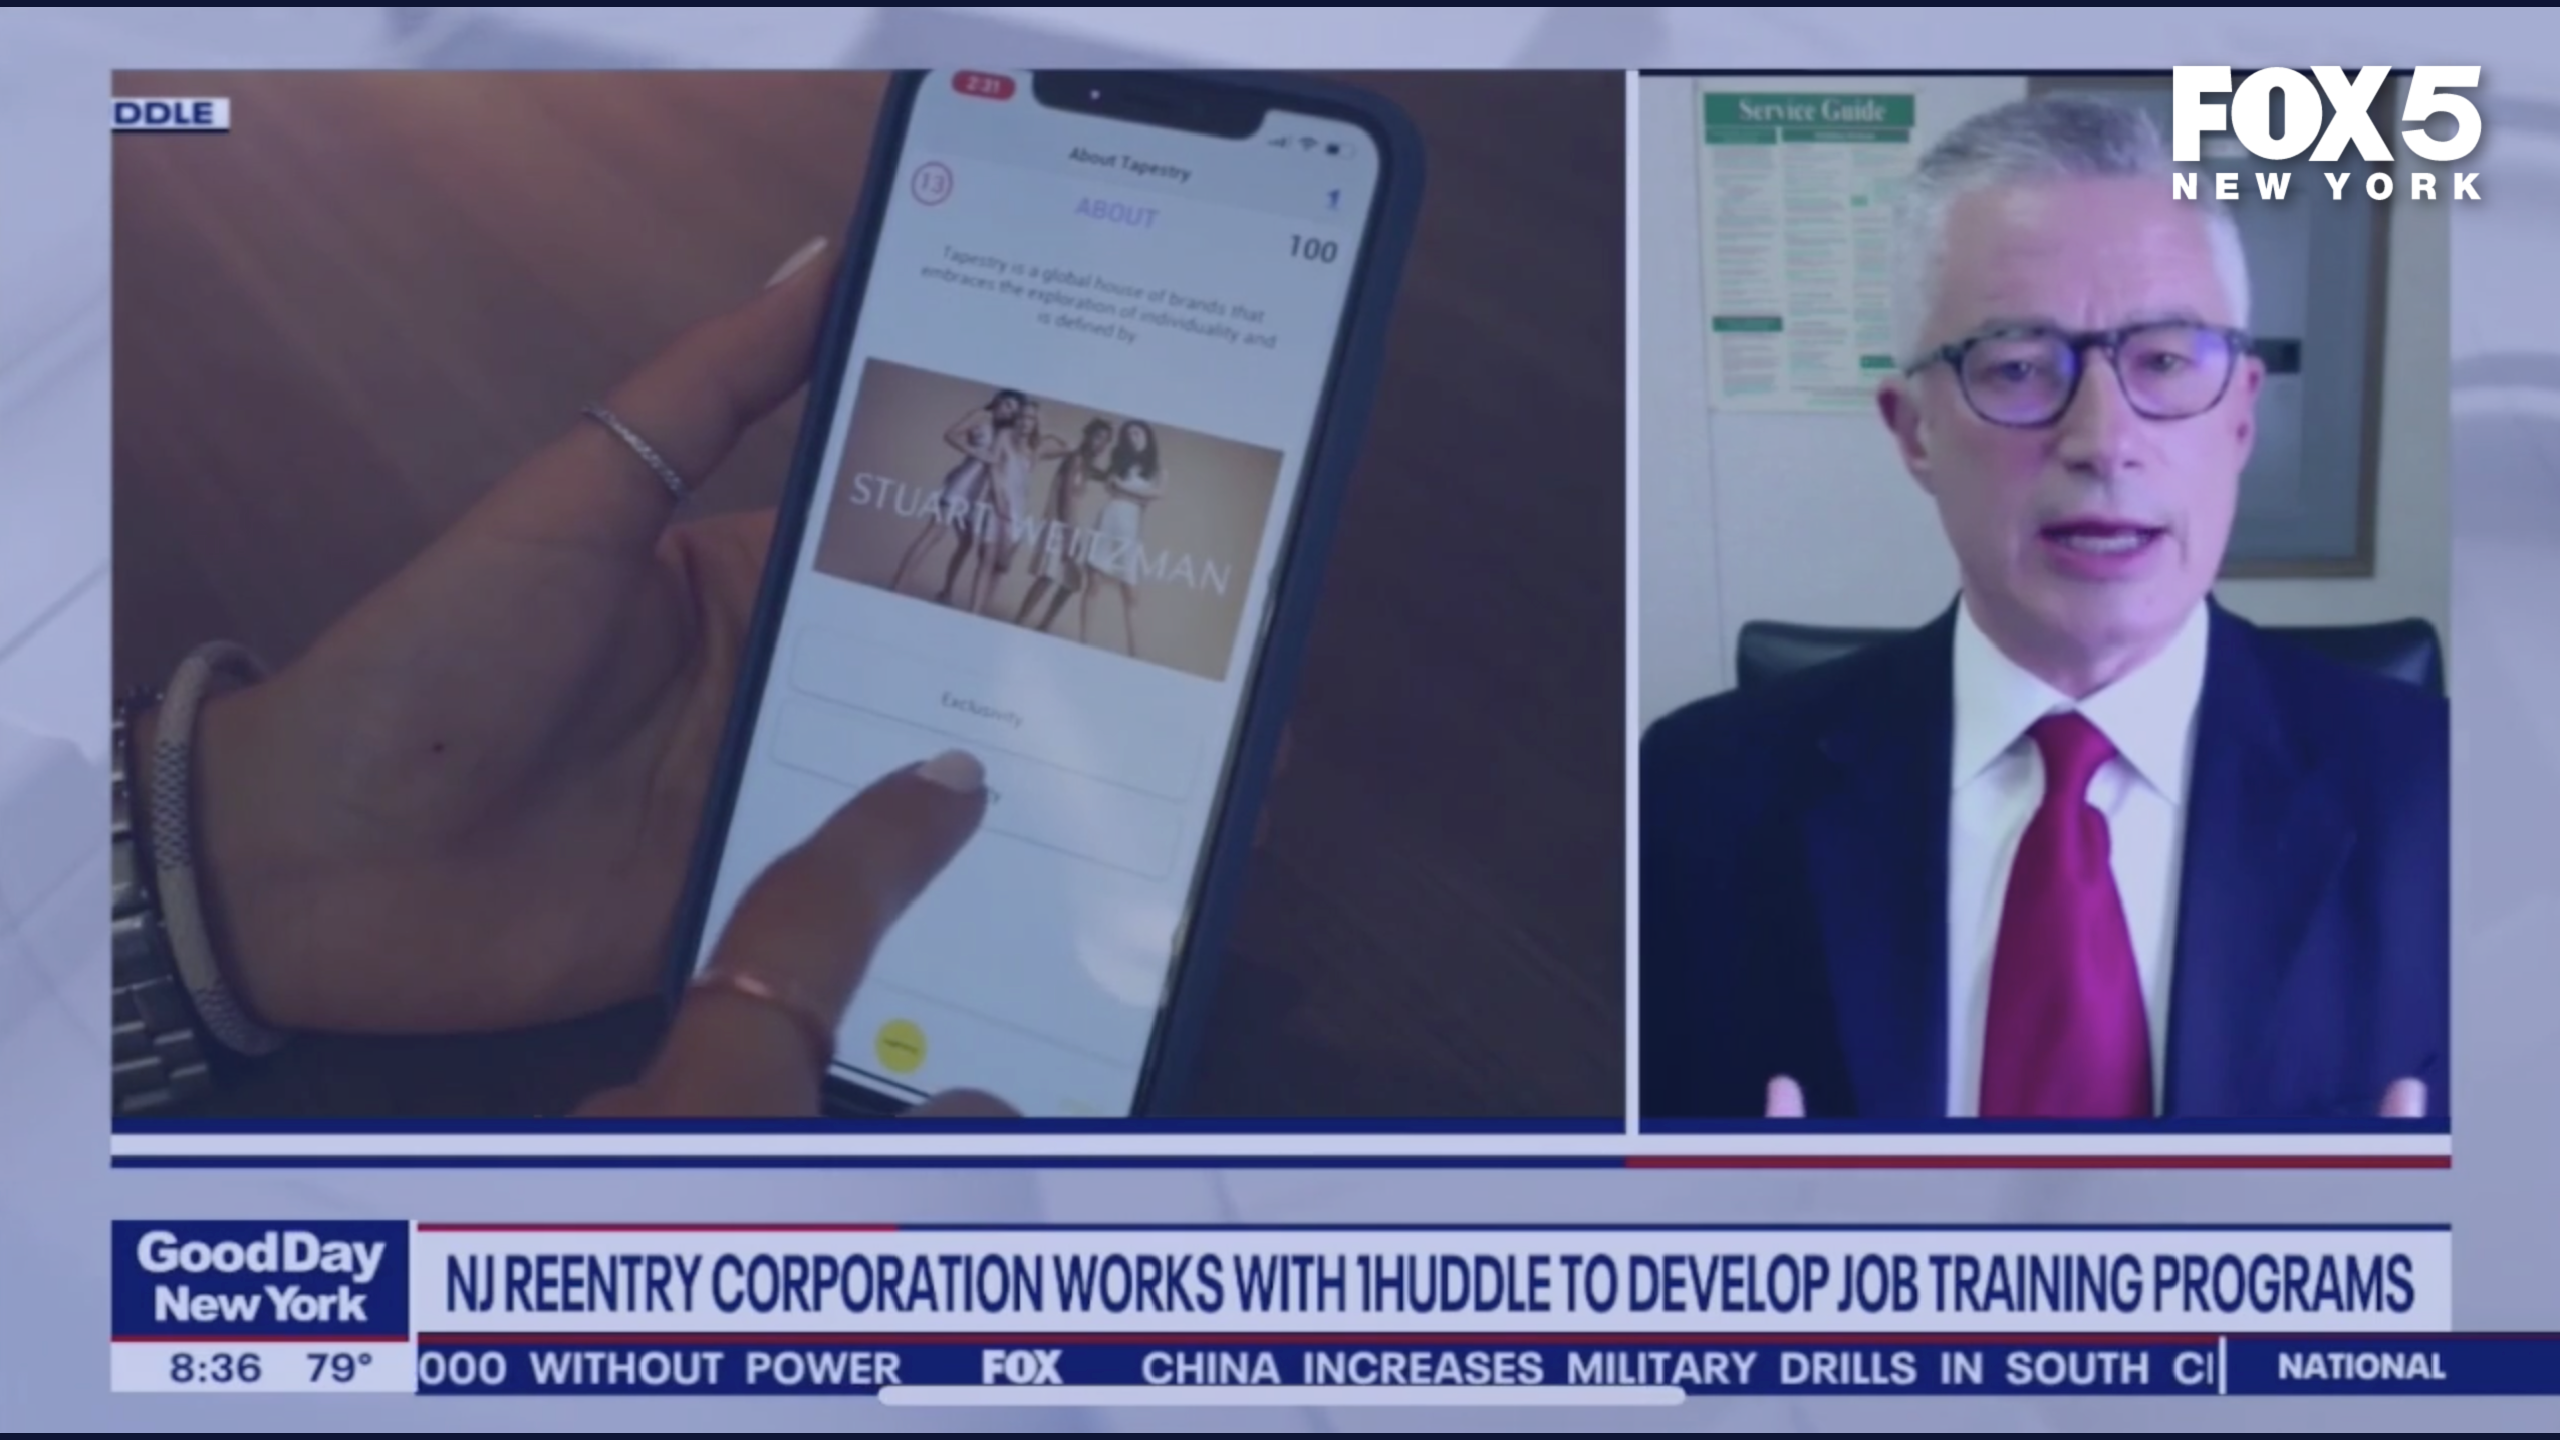 NJ Reentry Corporation Works with 1Huddle to Develop Job Training Programs